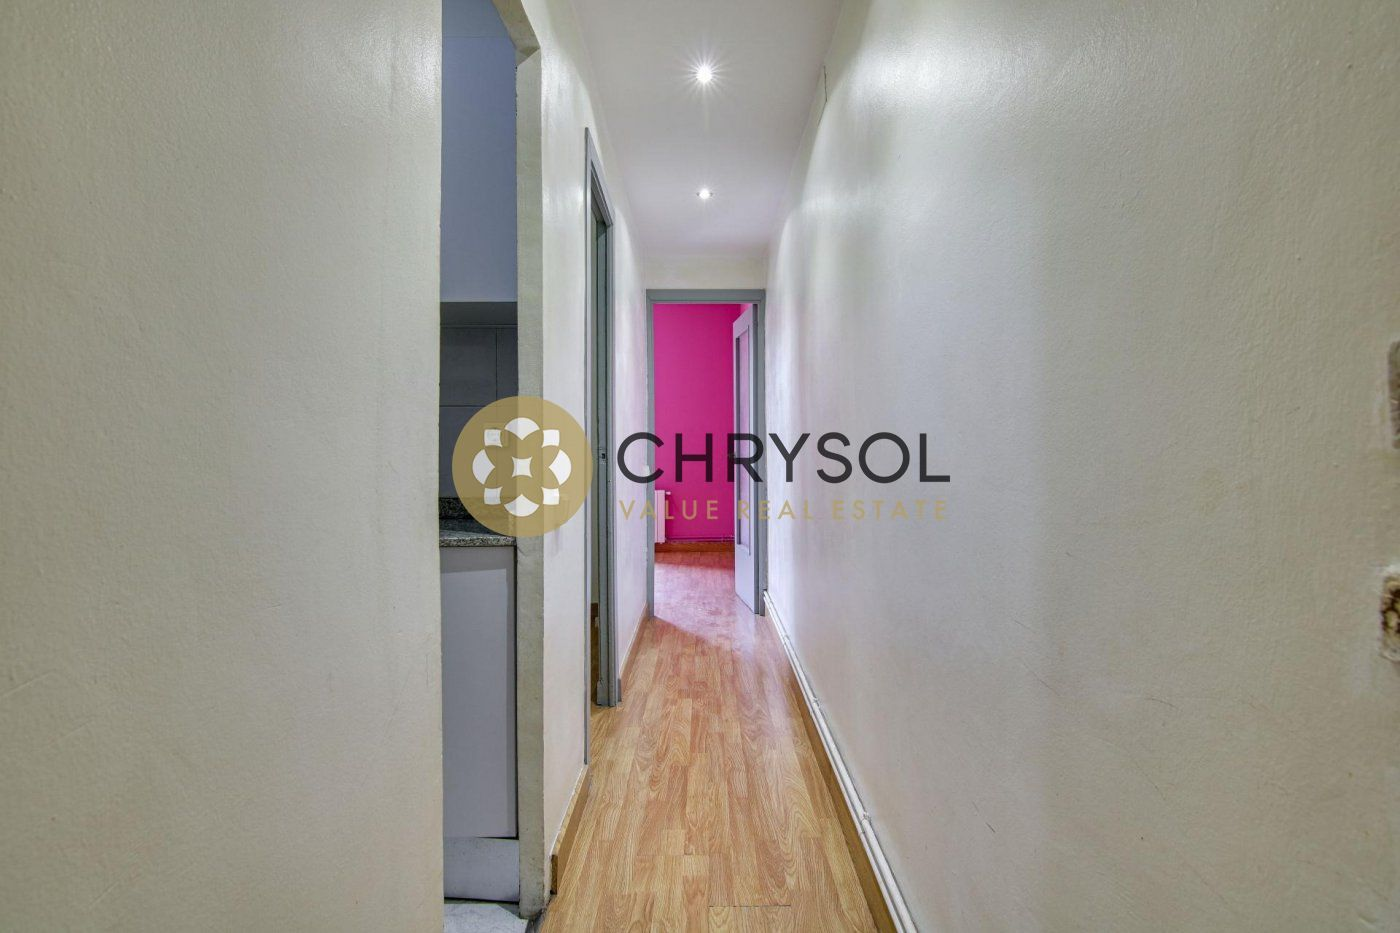 Photogallery - 12 - Chrysol Value